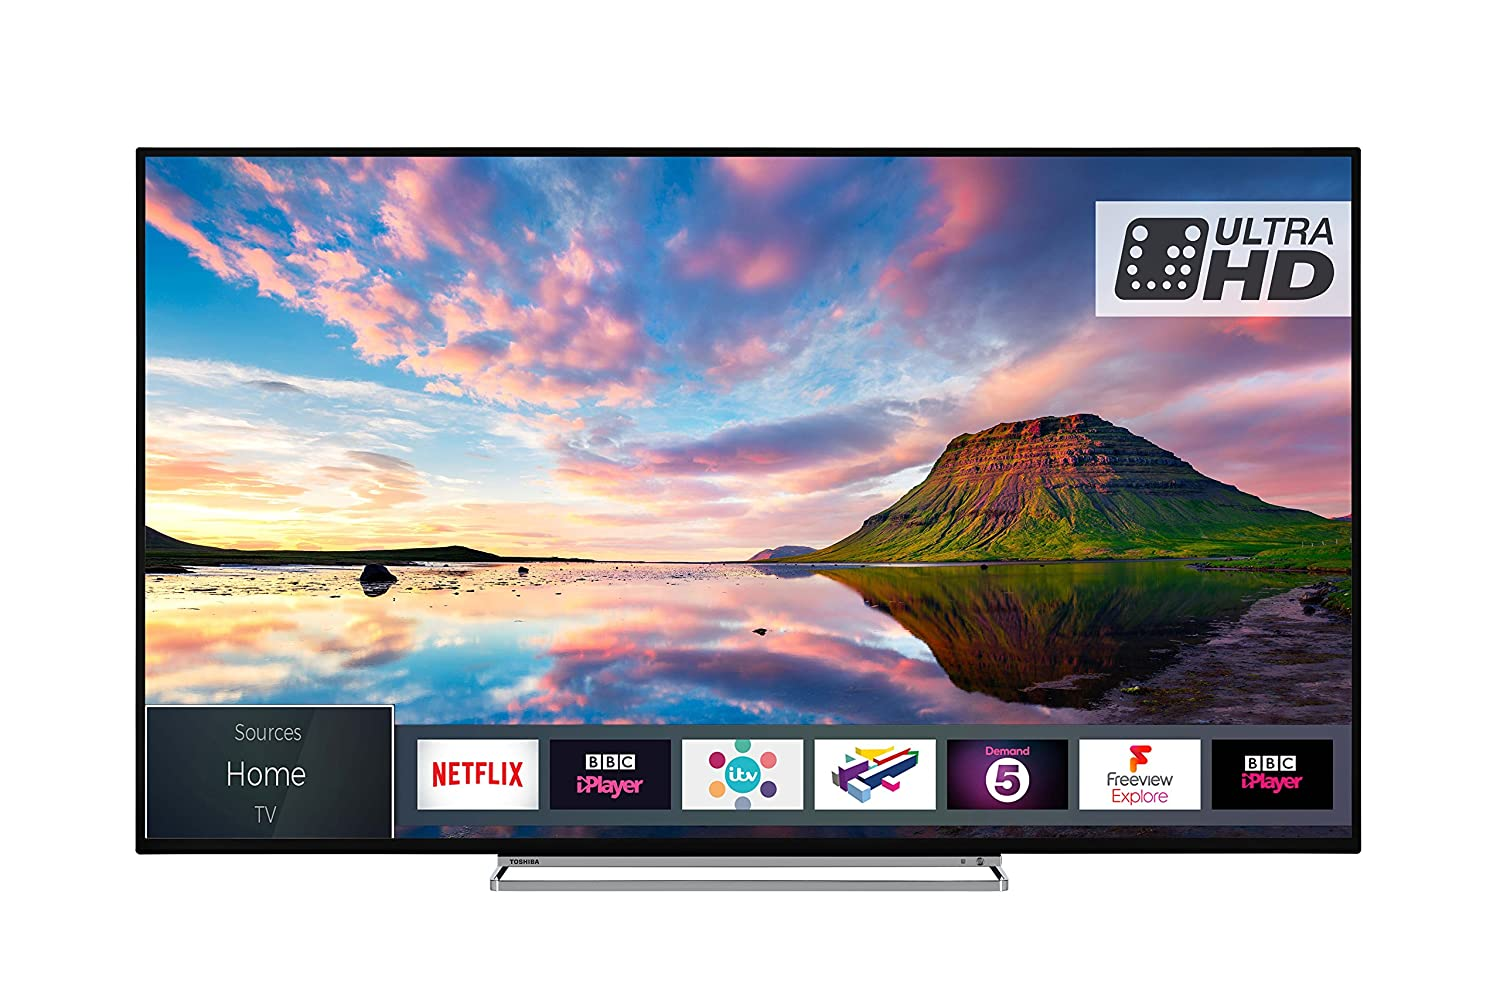 53235c95f Toshiba 65U5863DB 65-Inch Smart 4K Ultra-HD HDR LED TV WiFi with Freeview  Play - Black/Silver (2018 Model): Amazon.co.uk: TV